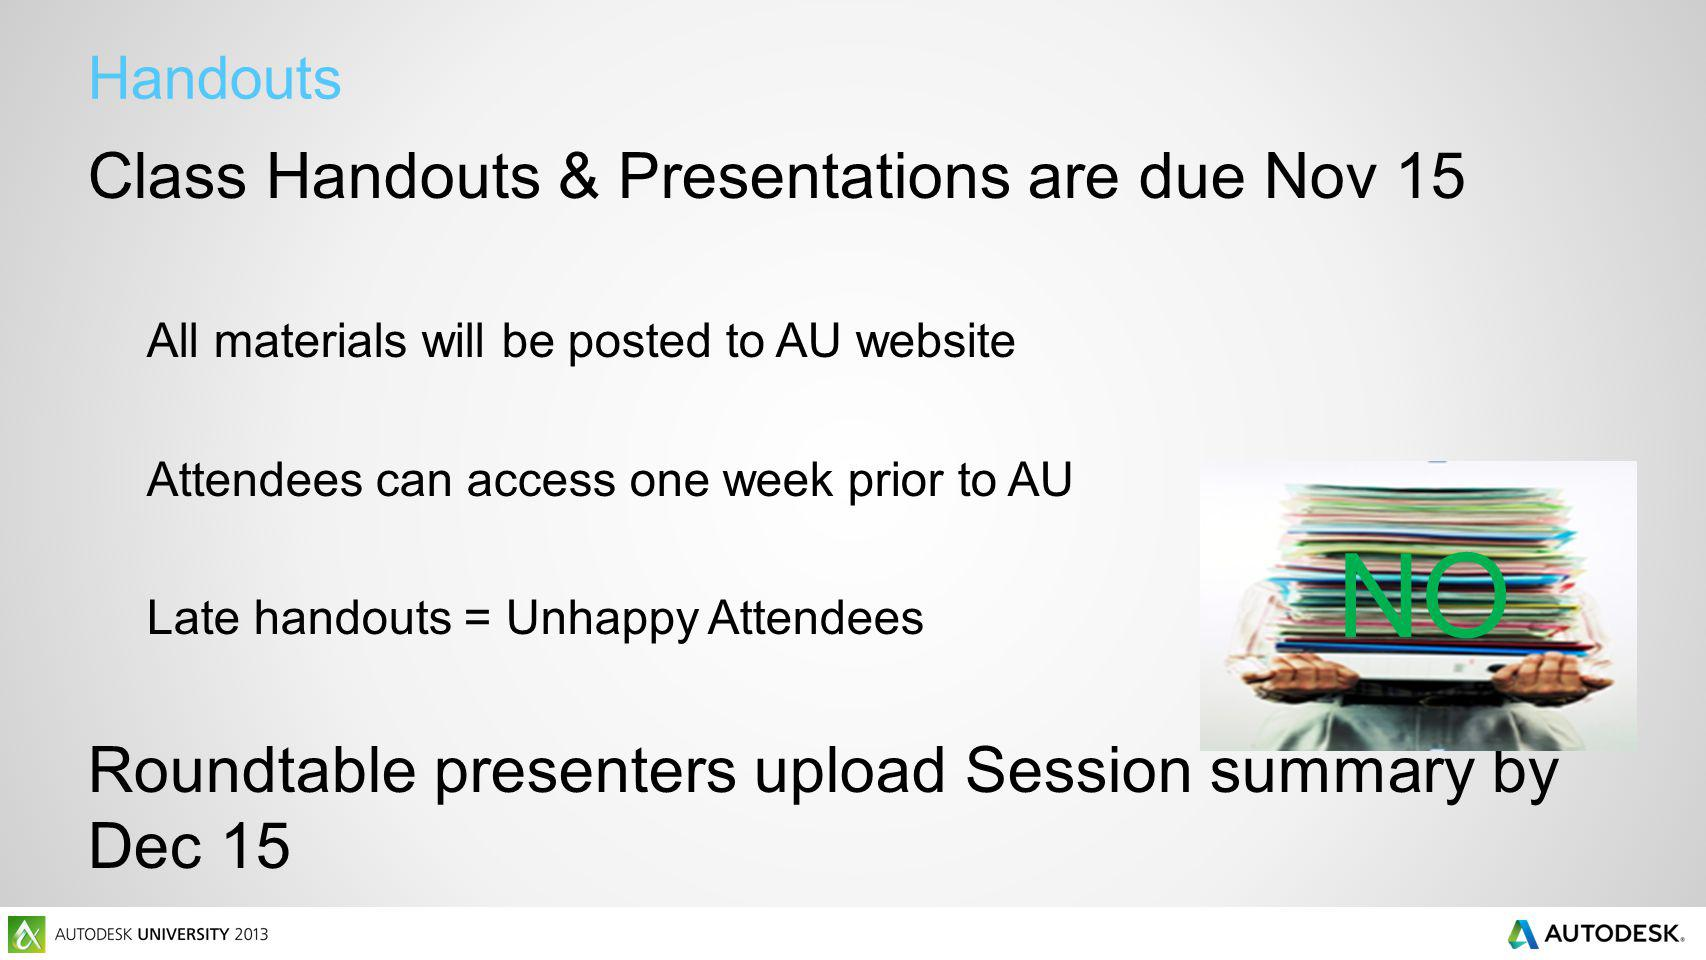 Handouts Class Handouts & Presentations are due Nov 15 All materials will be posted to AU website Attendees can access one week prior to AU Late handouts = Unhappy Attendees Roundtable presenters upload Session summary by Dec 15 NO